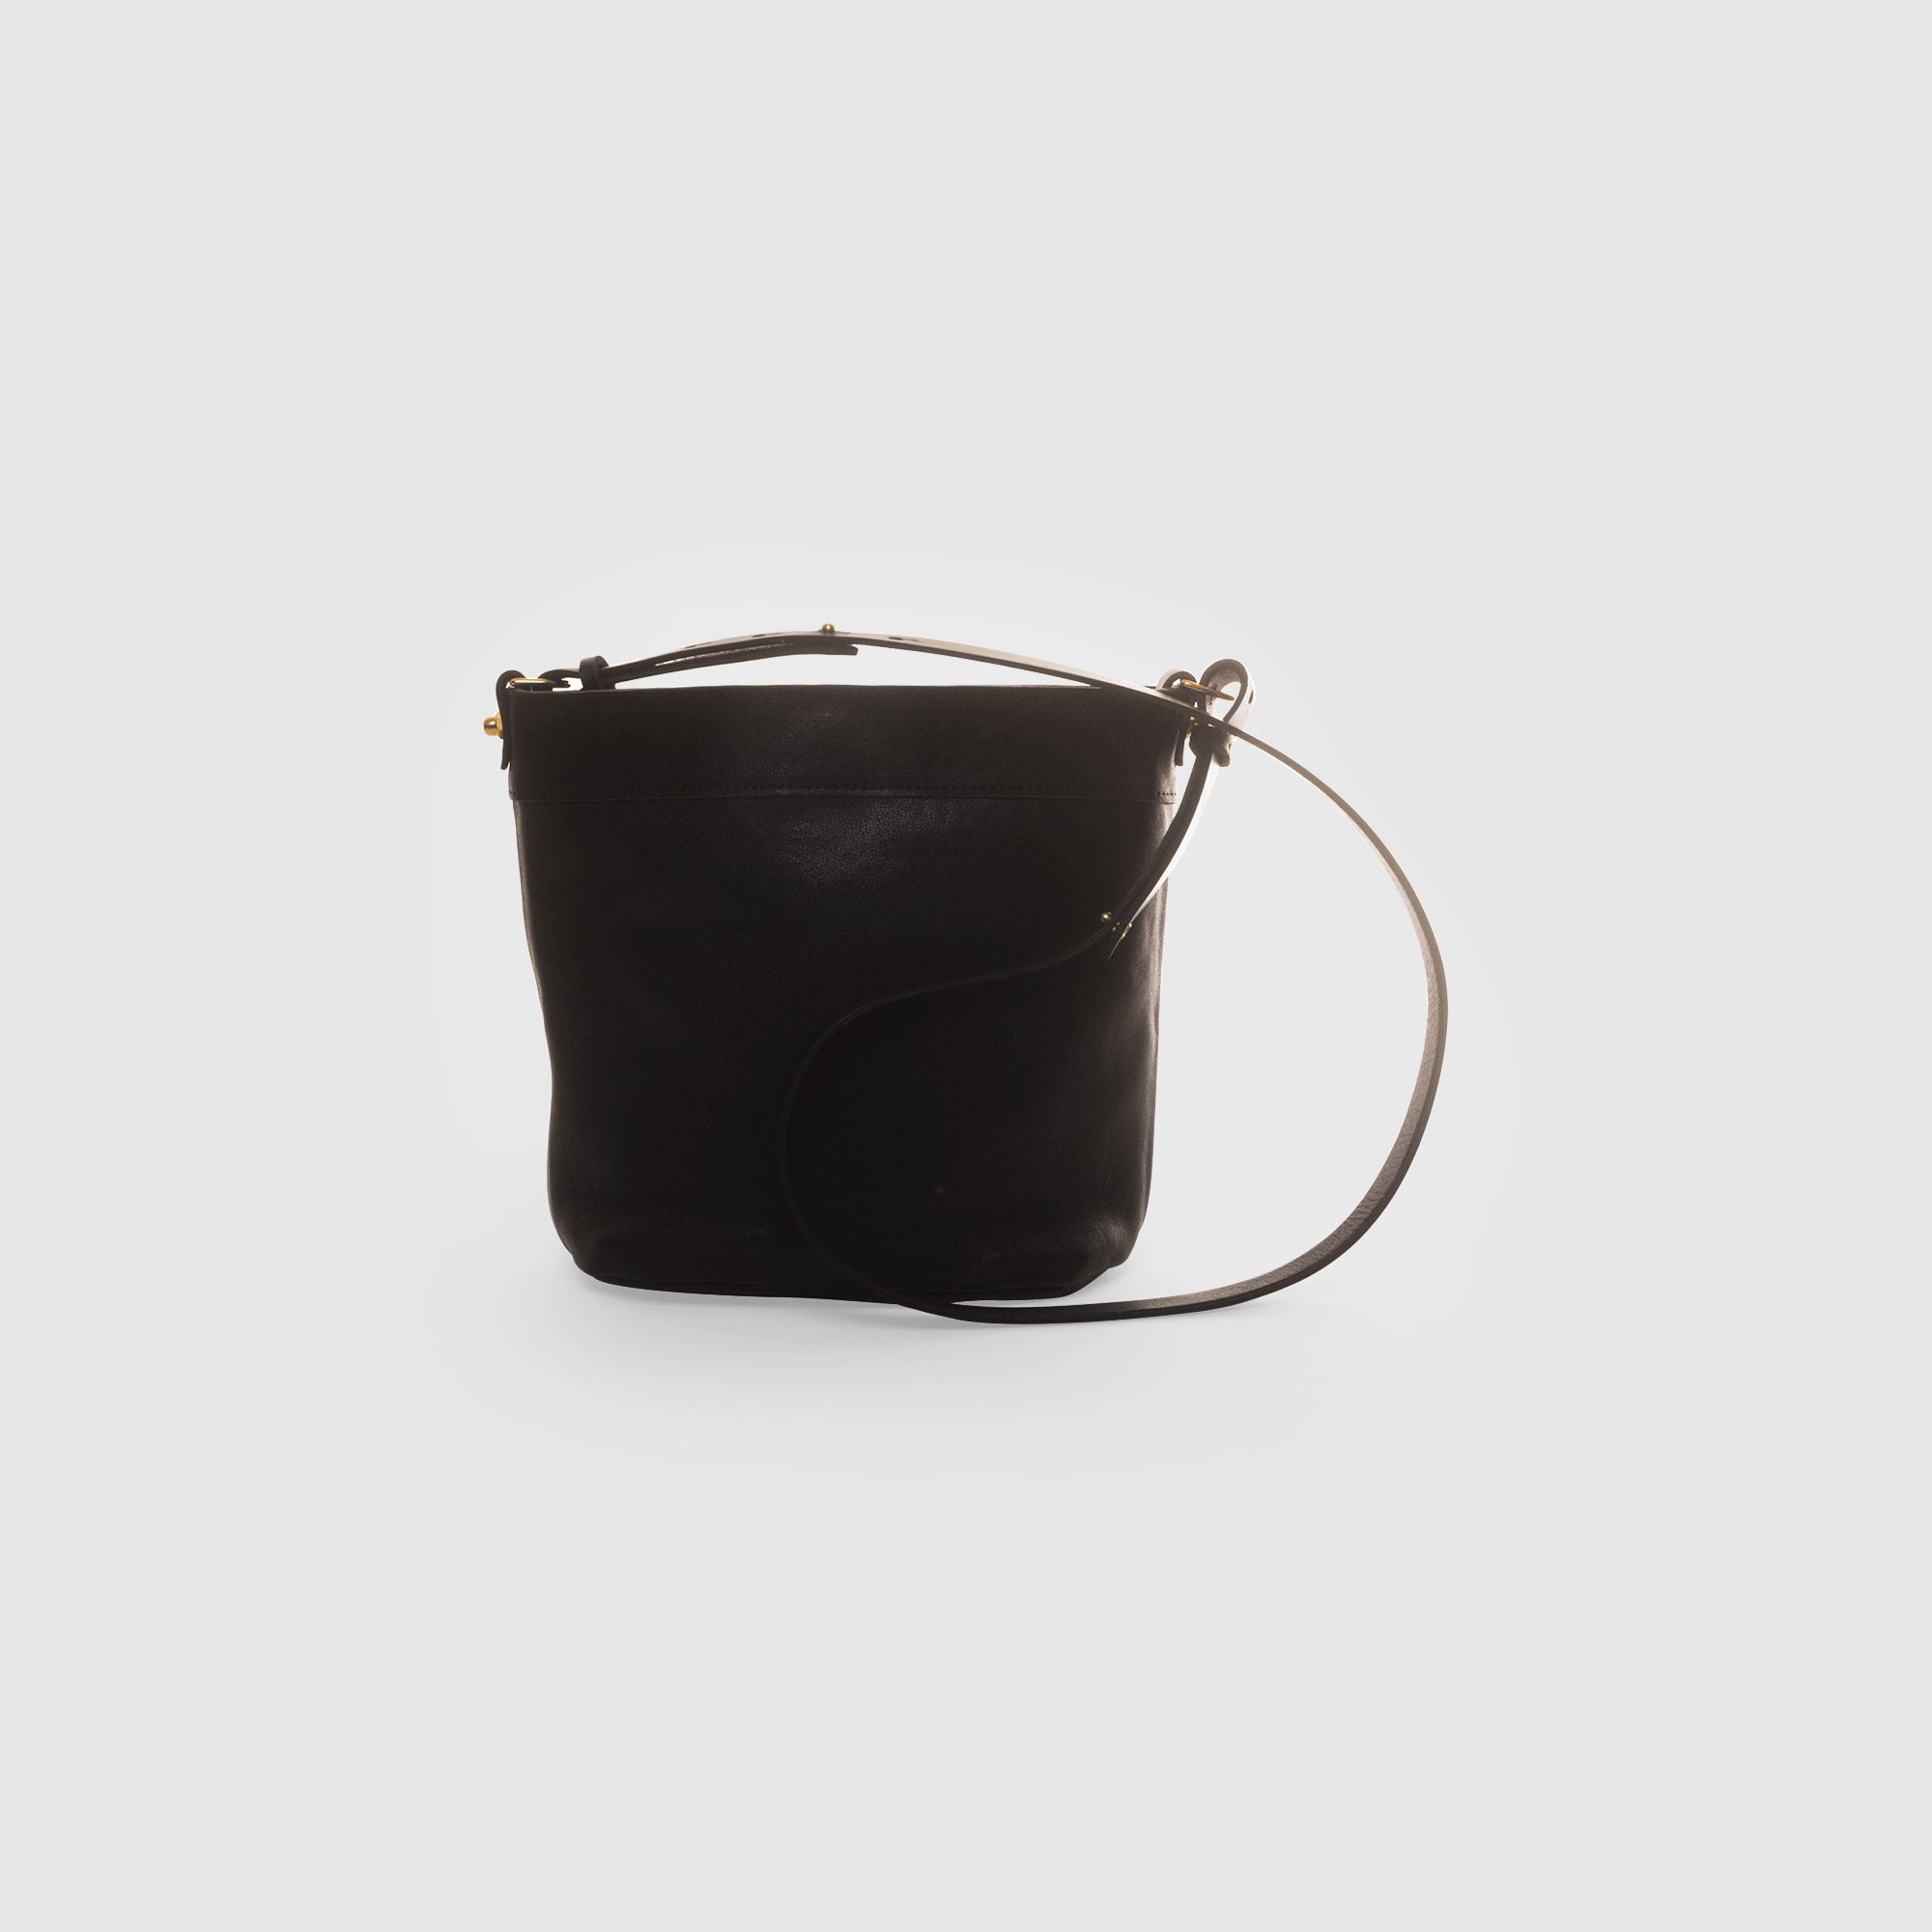 CLASSIC BUCKET BAG // CHARCOAL